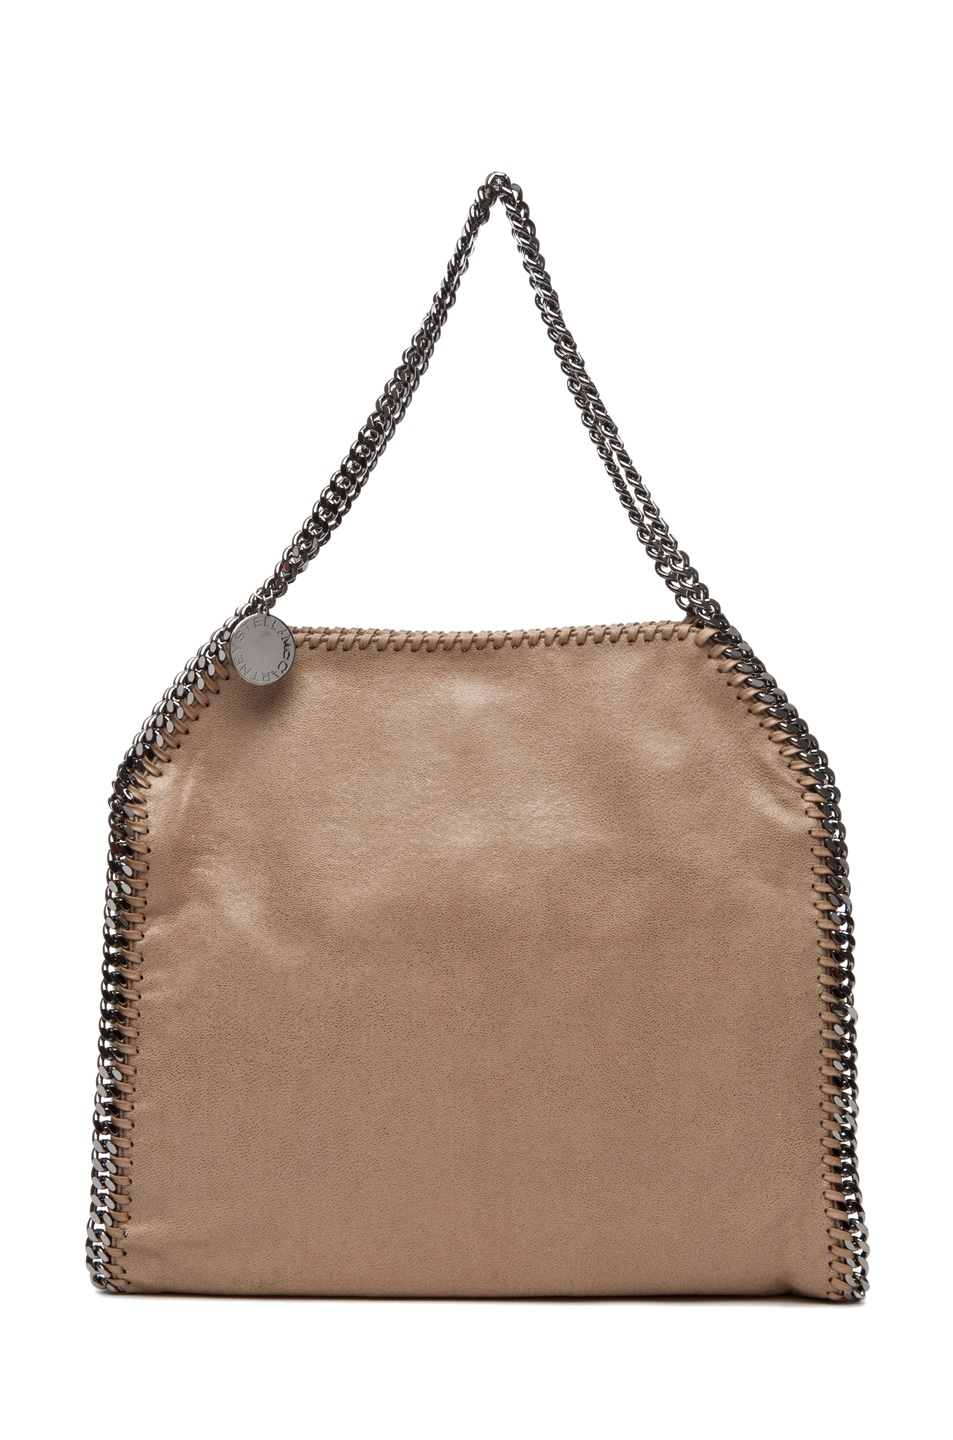 Image 1 of Stella McCartneyShaggy Deer Small Tote in Toffee